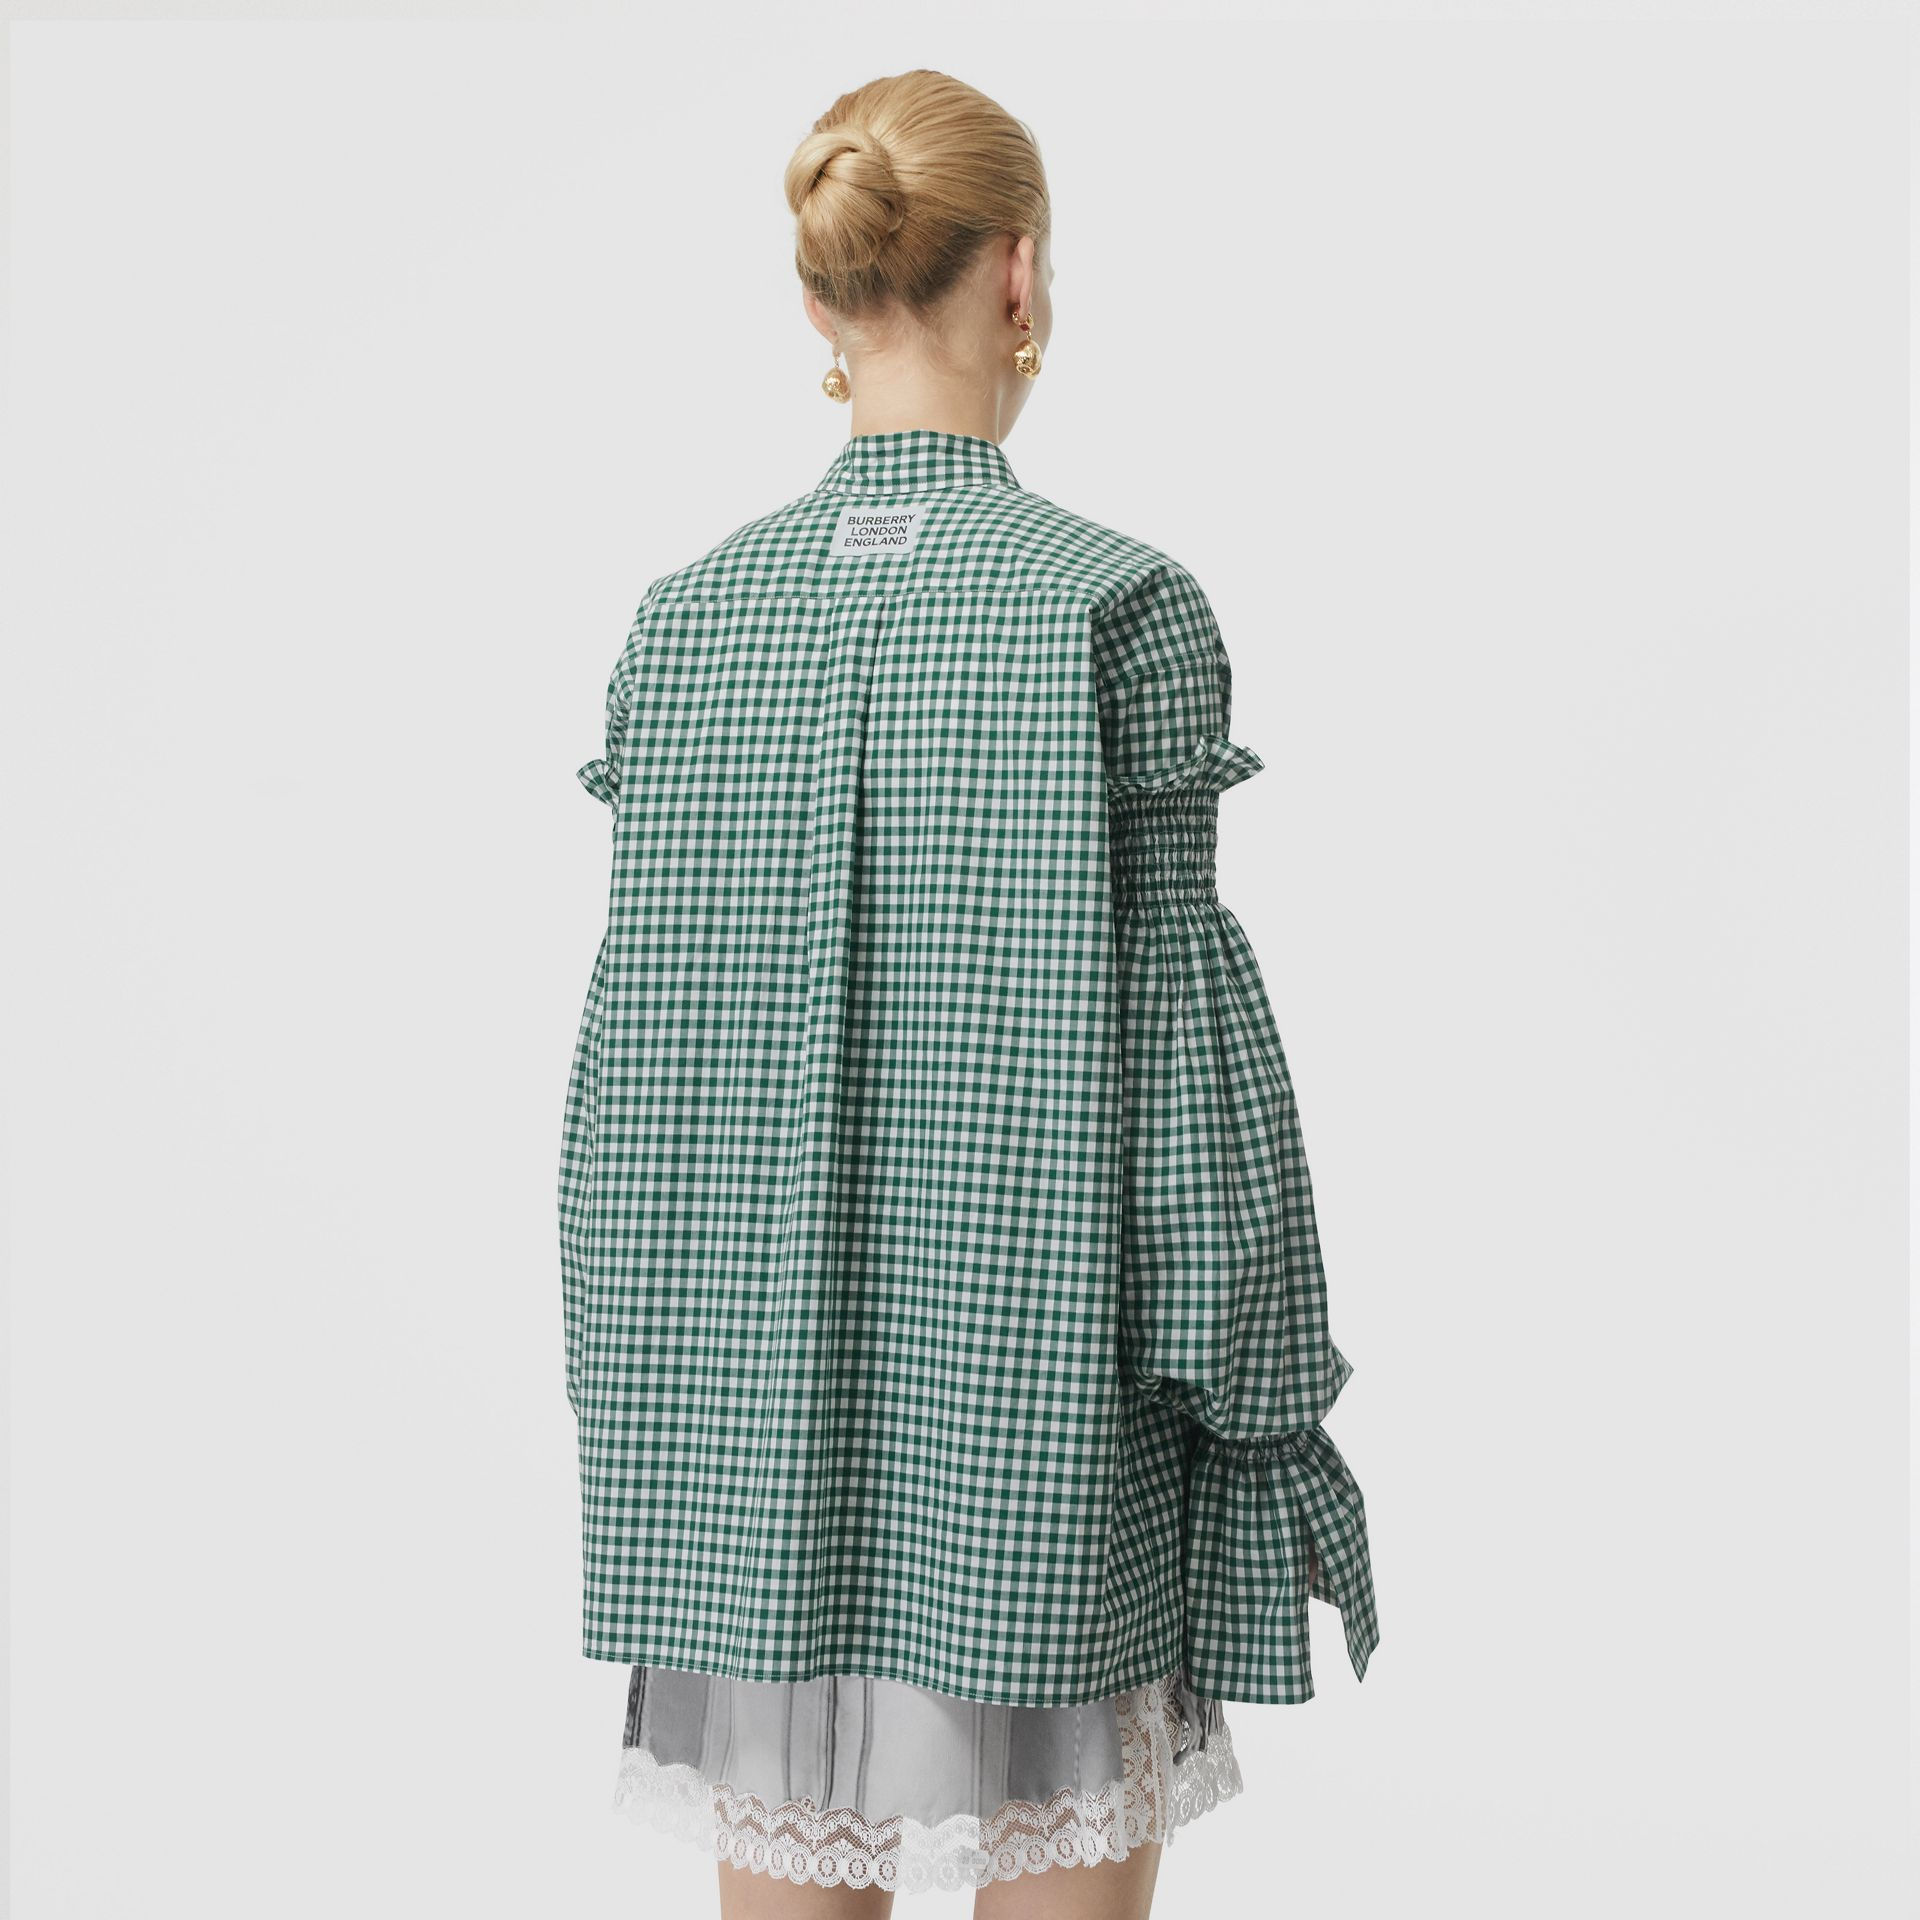 Puff-sleeve Gingham Cotton Shirt in White/green - Women | Burberry - gallery image 2